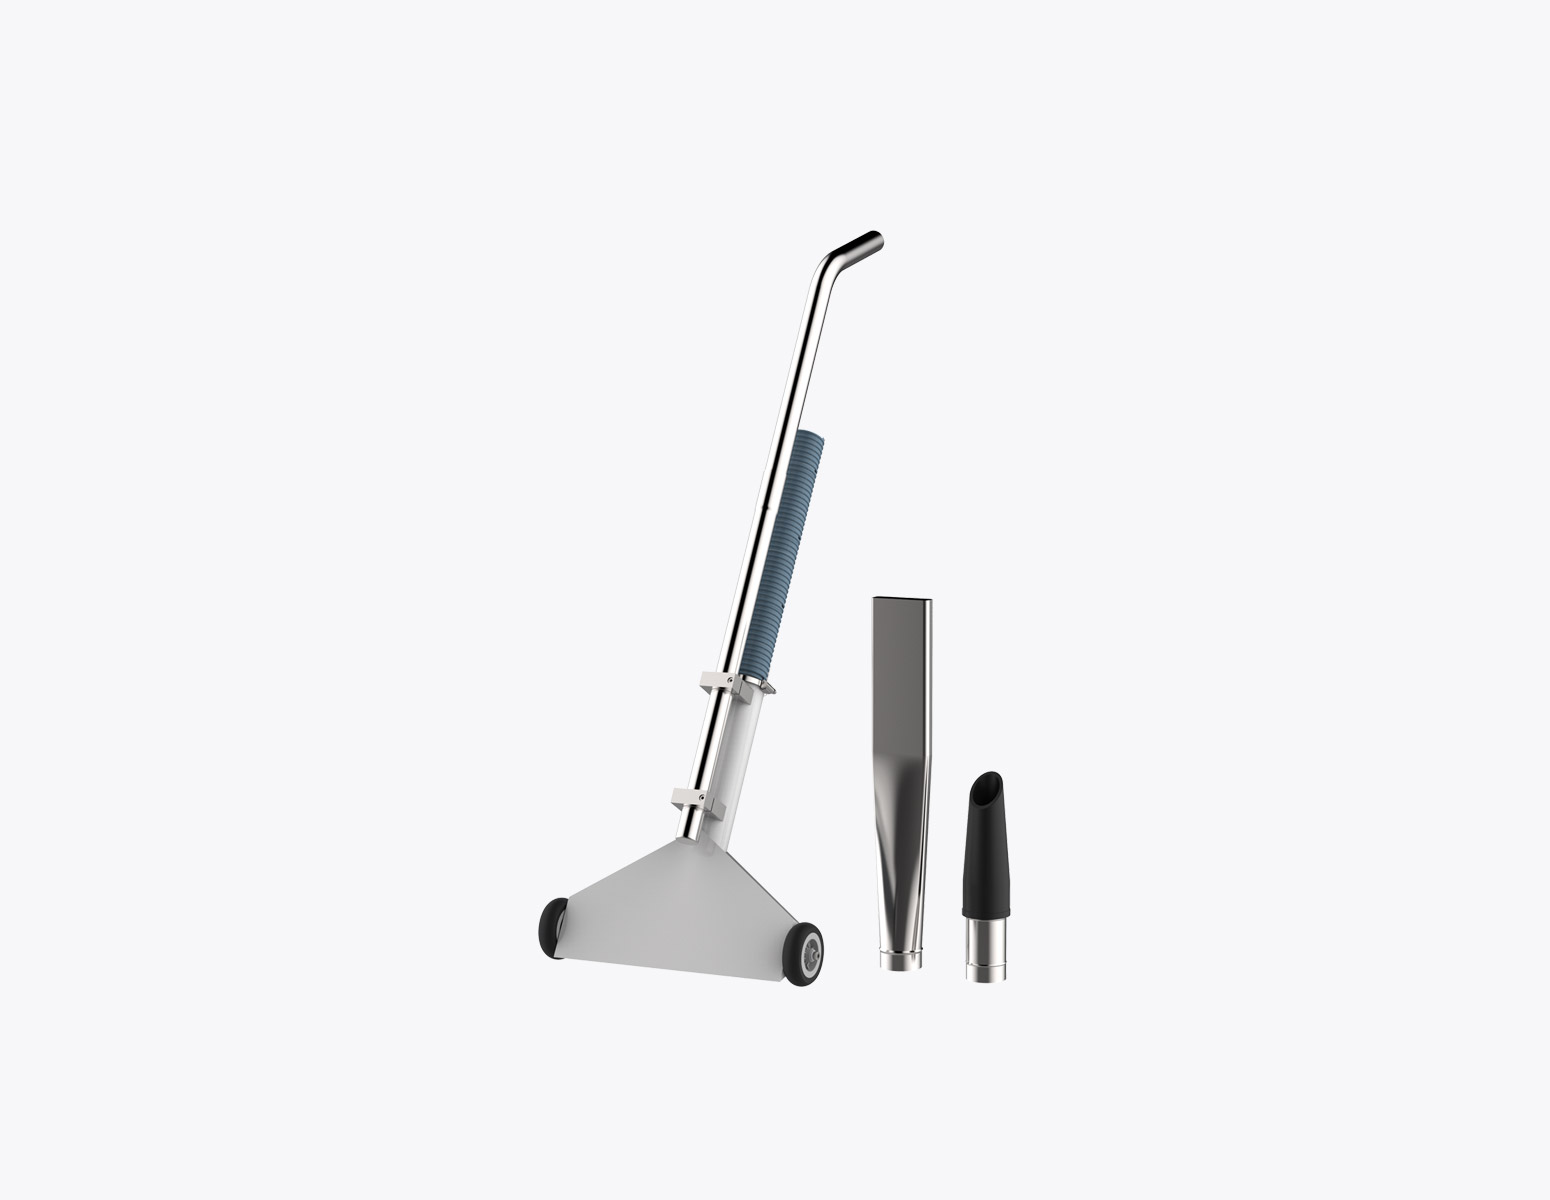 kleaning-kit-70mm-industrial-vacuum-cleaners-ivision-vacuum